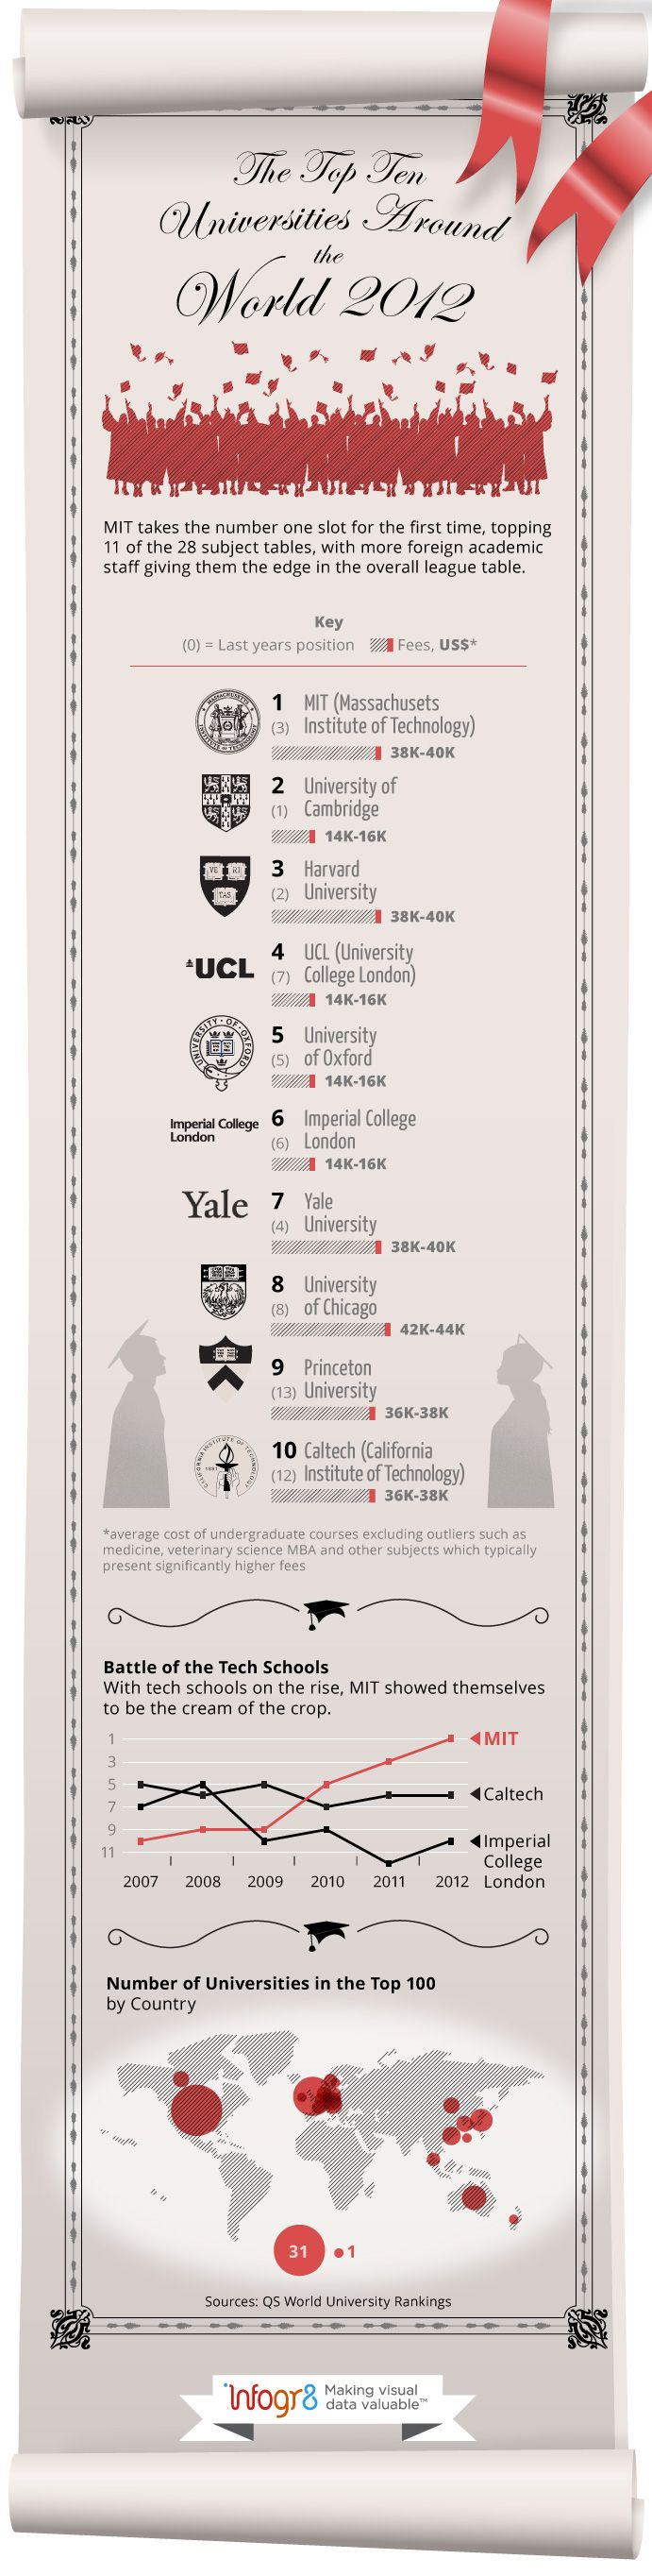 Move over Cambridge; out of the way Harvard; Yale – you're down to seventh – tech schools are on the up and MIT is top of the pile for the first